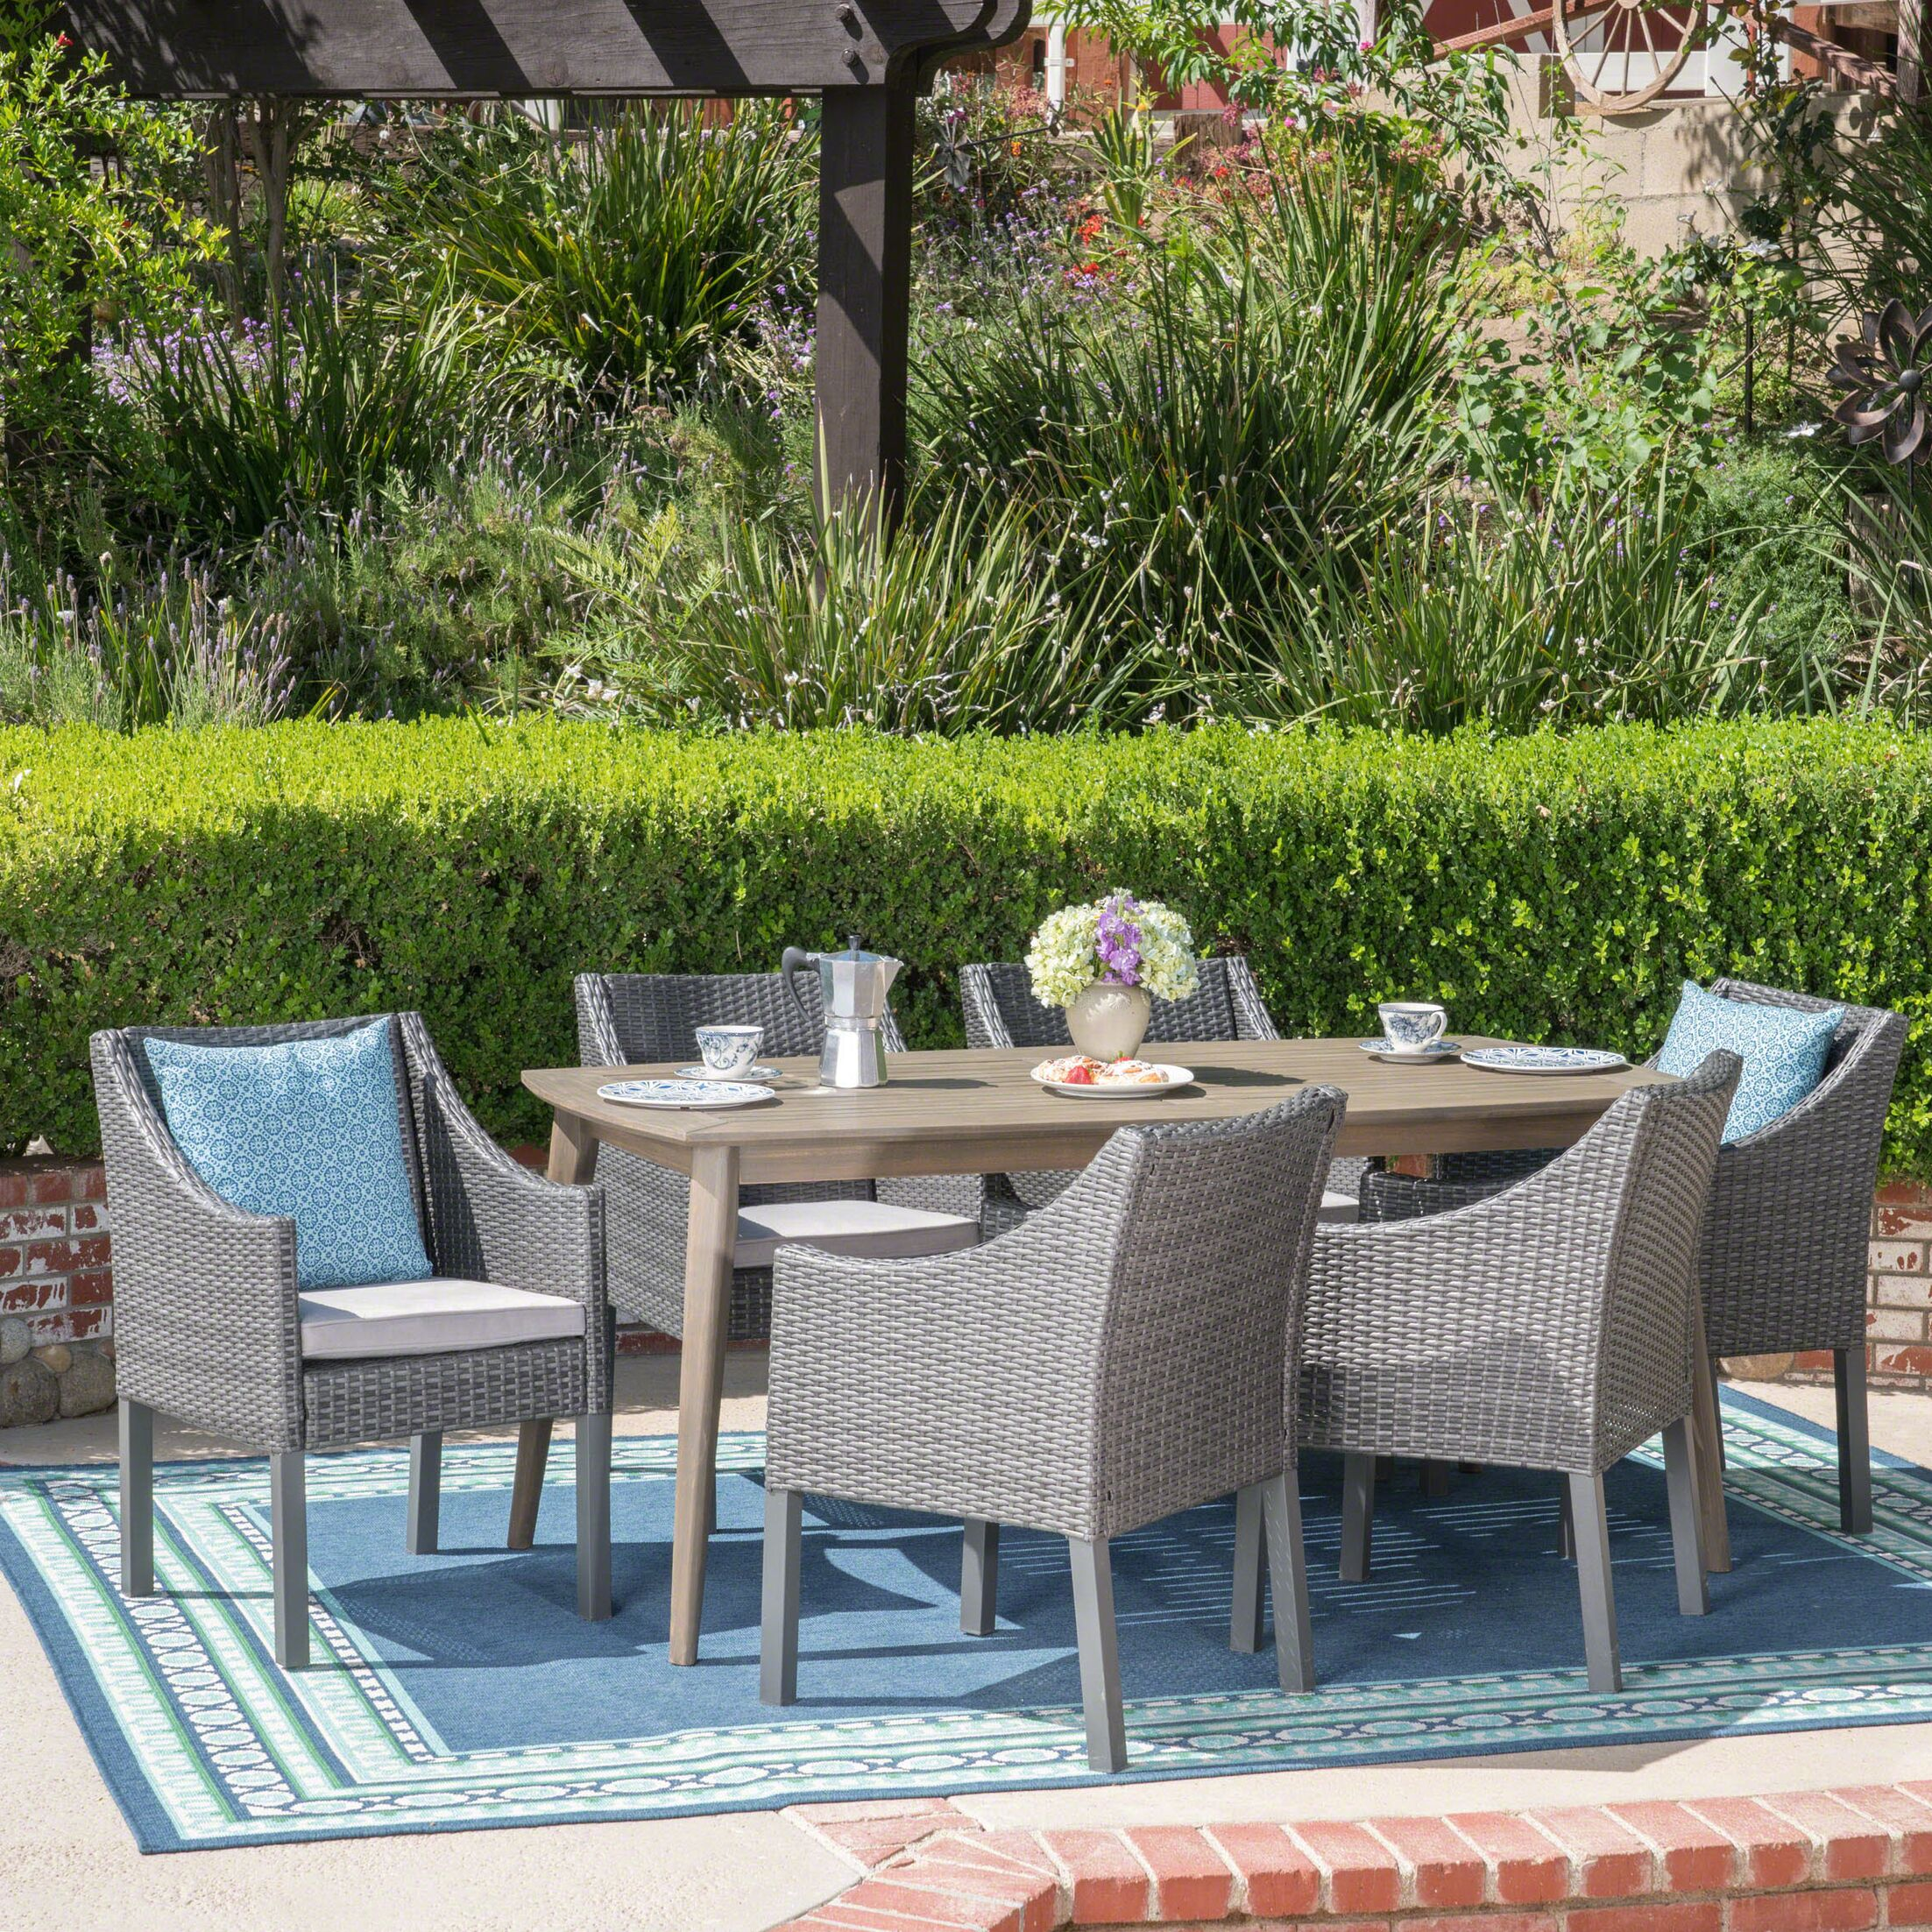 Berghauser 7 Piece Dining Set with Cushions